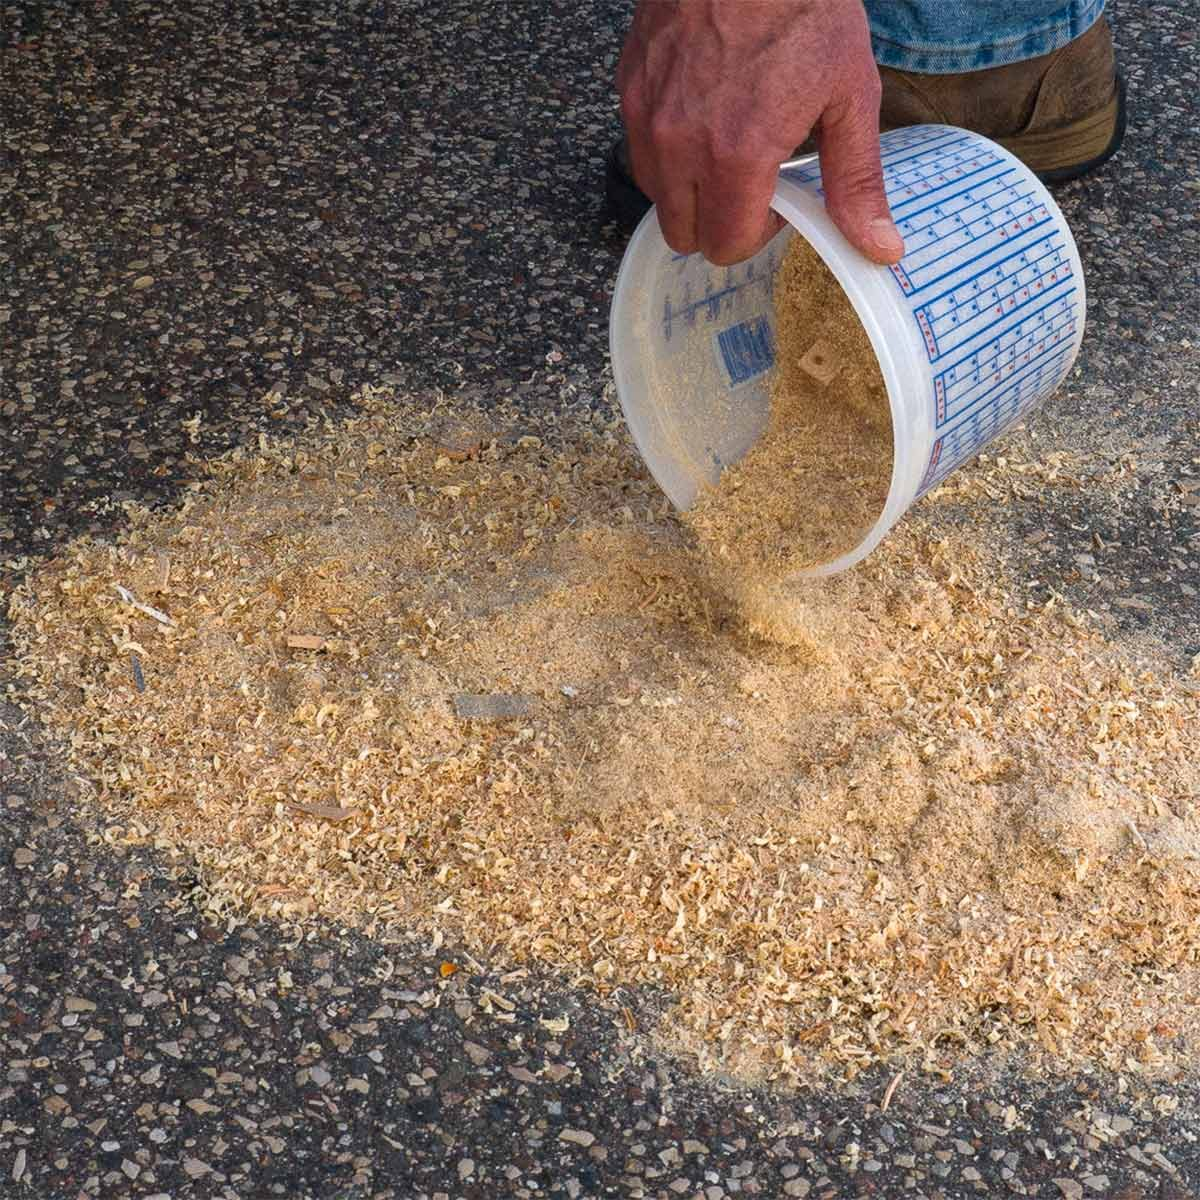 spread sawdust over oil spill